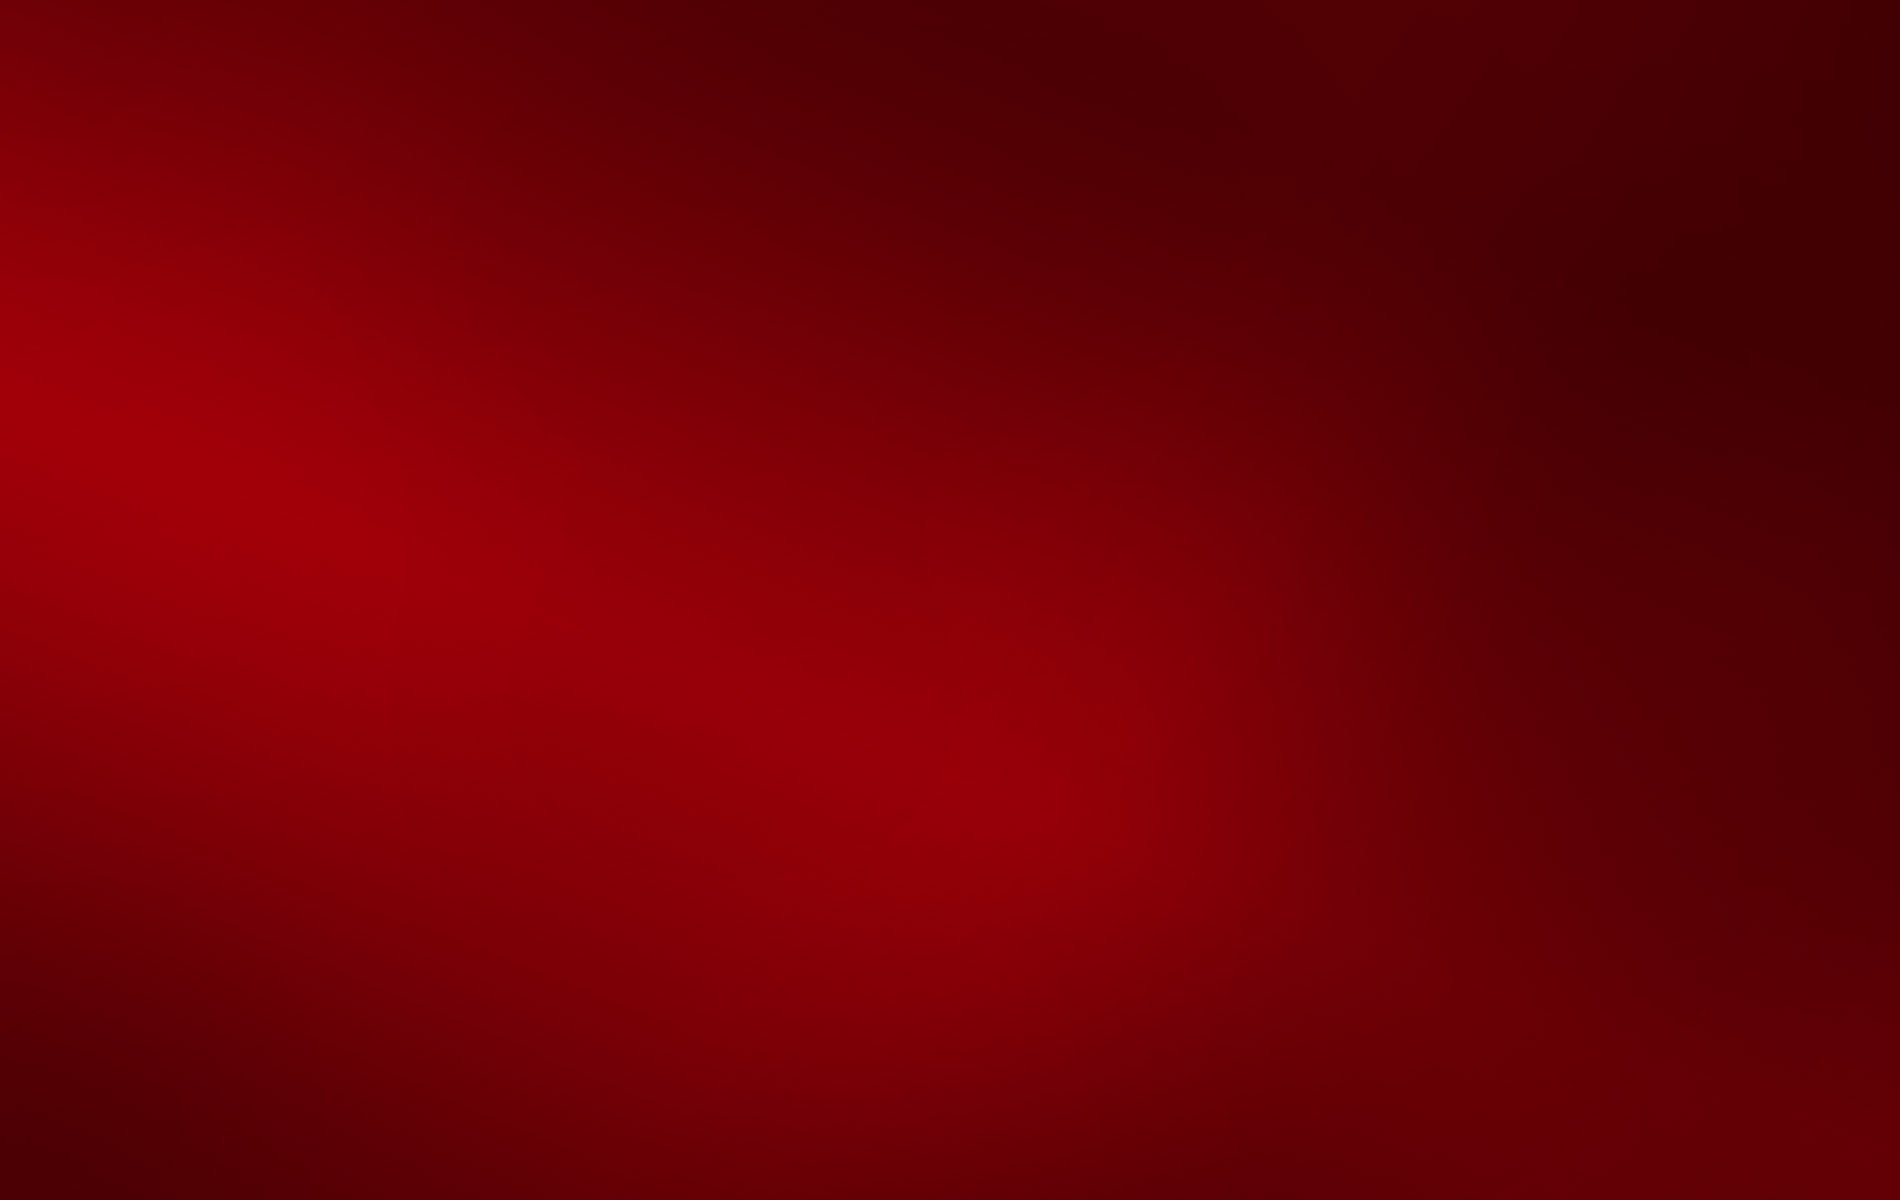 Free 3d Wallpaper For Cell Phones Download Royal Red Wallpaper Gallery